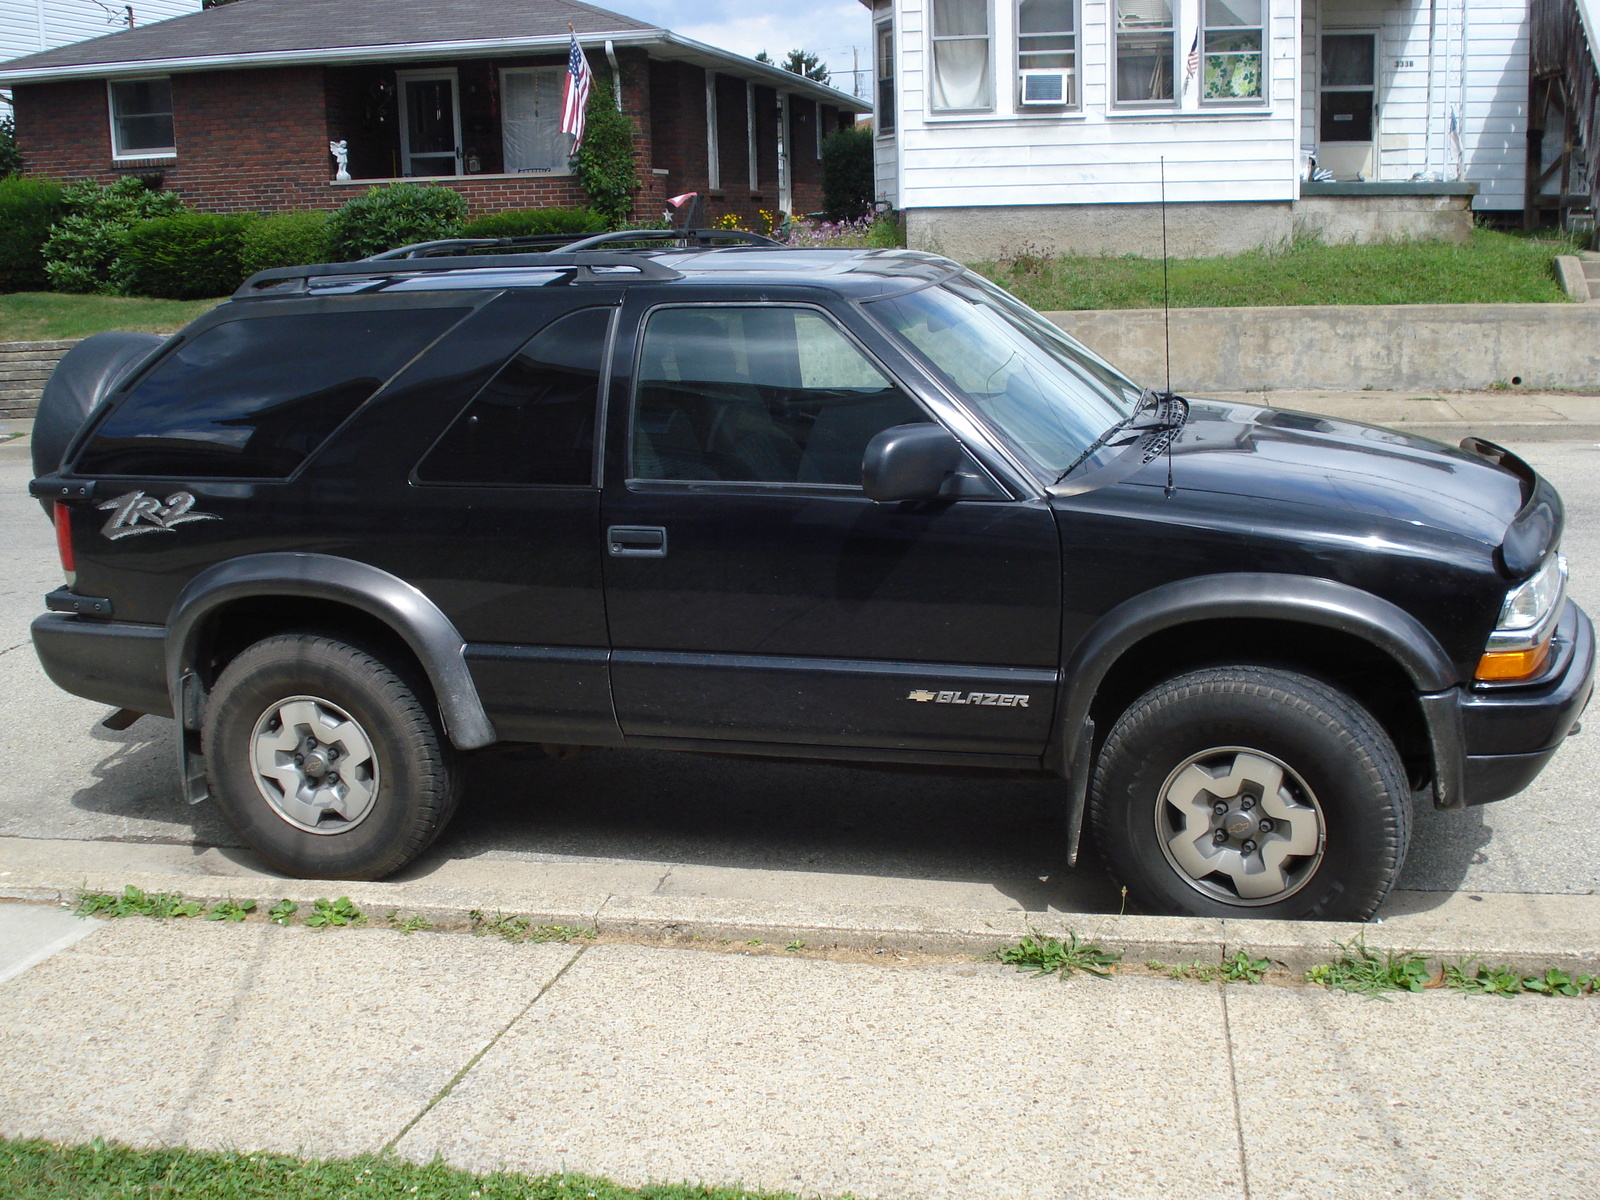 Chevrolet blazer photo - 2